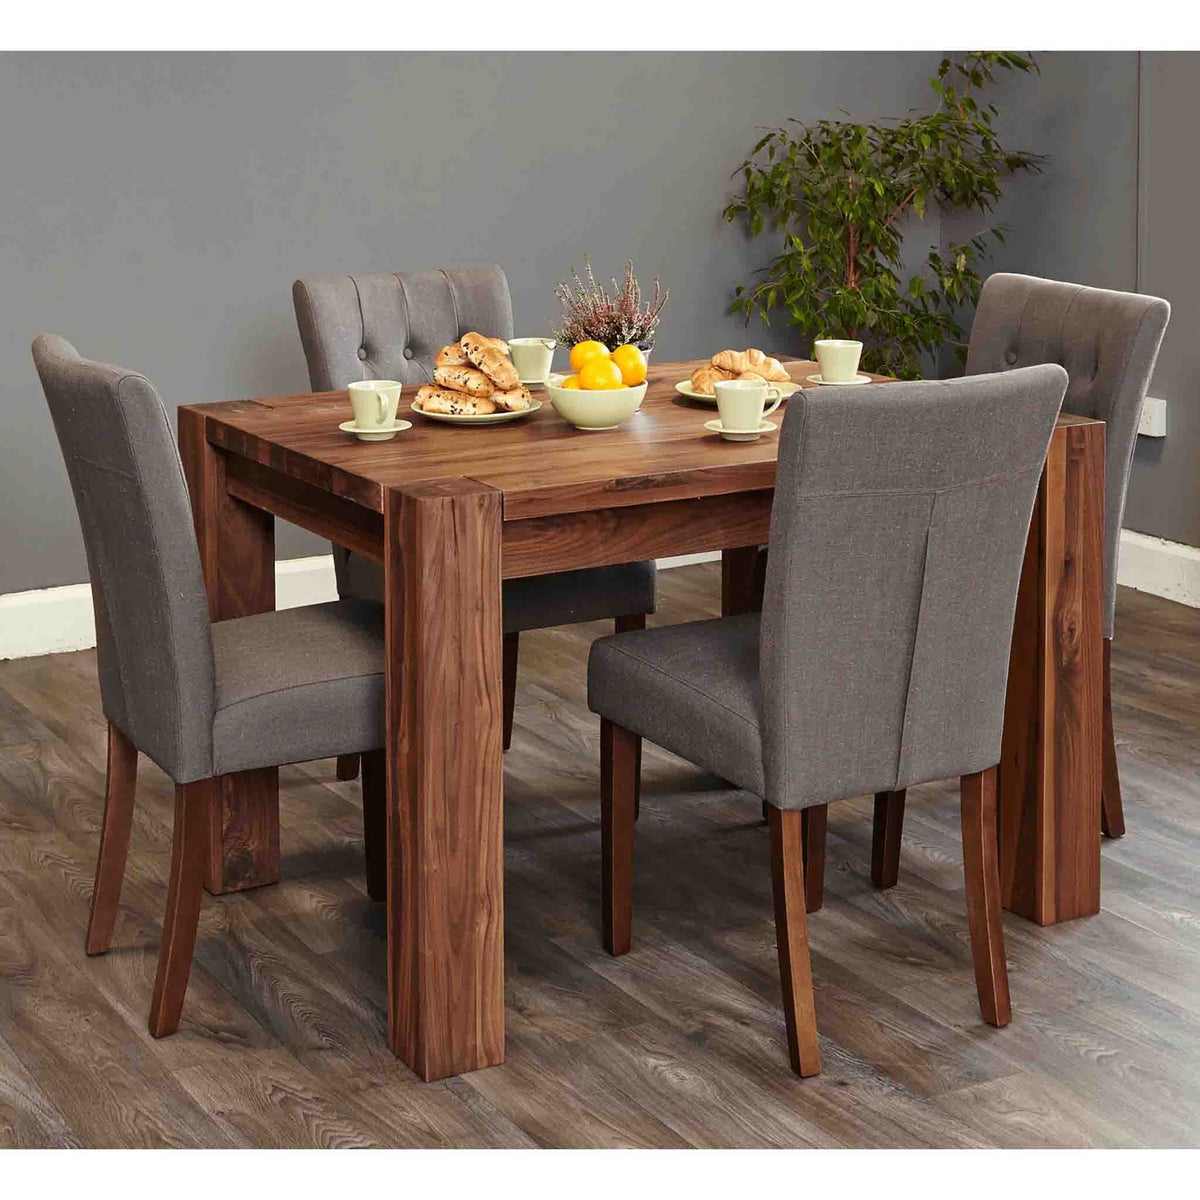 The Salem Walnut 4 Seater Dining Table